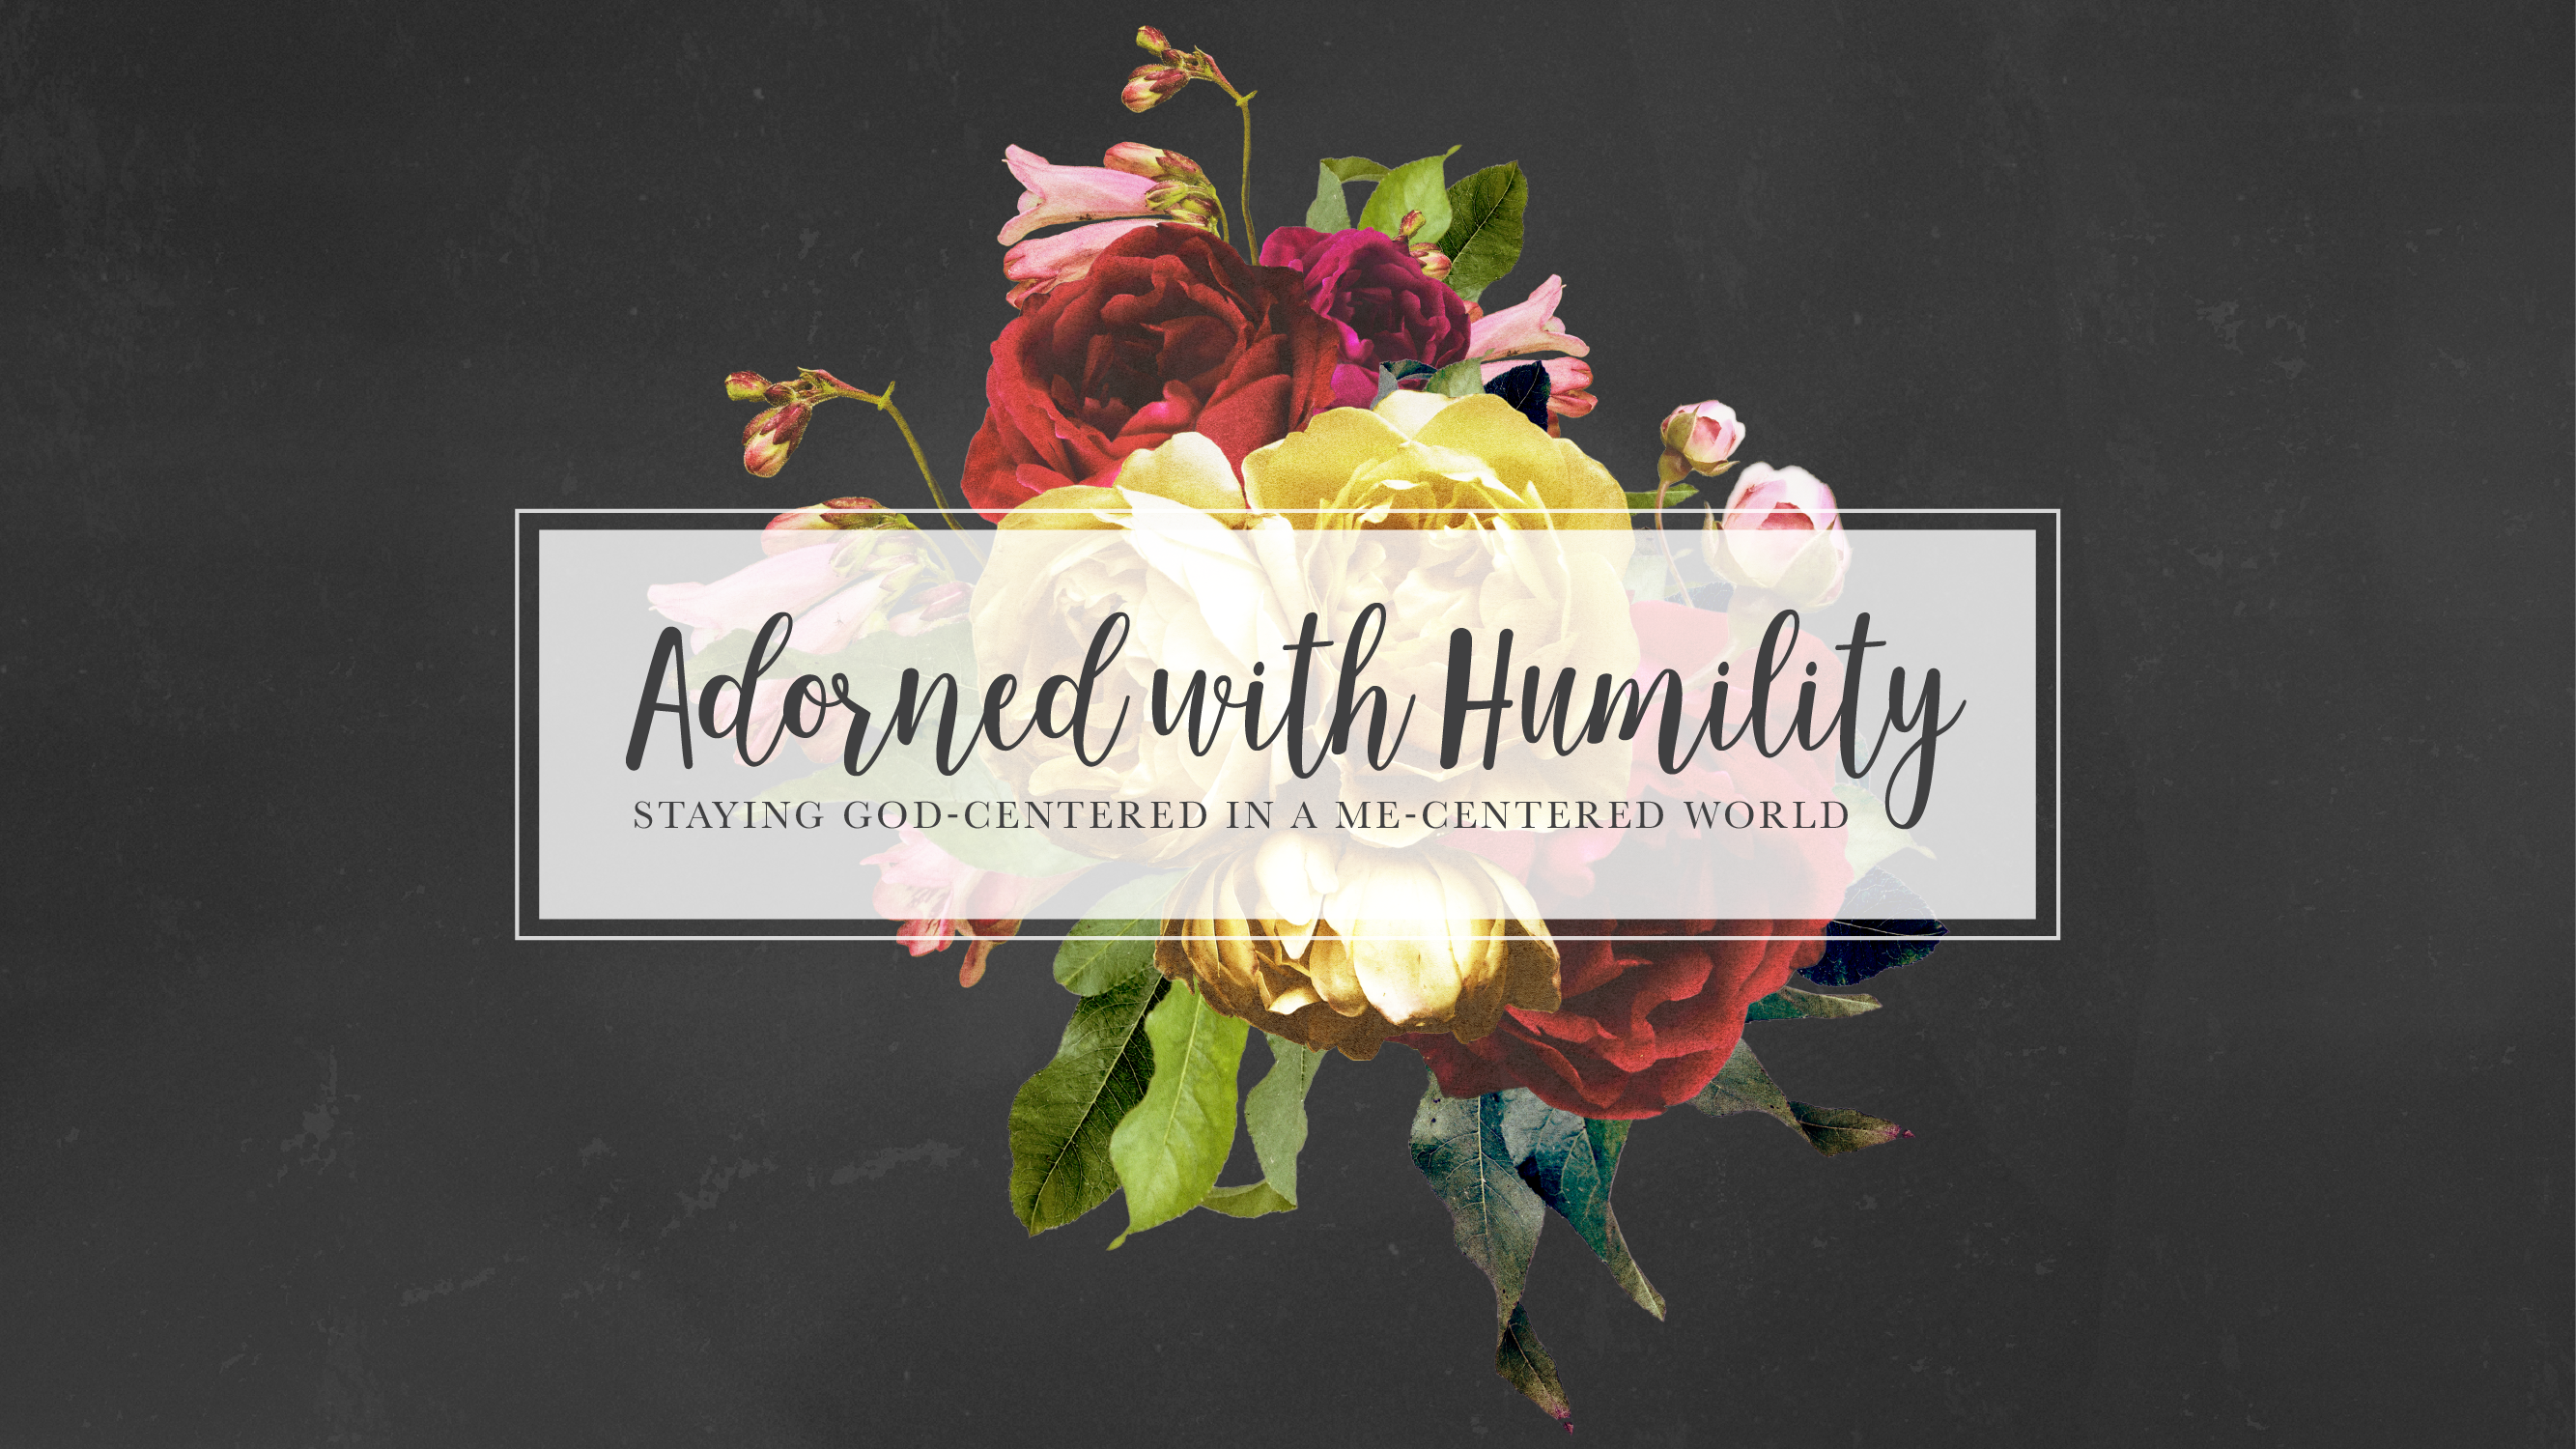 Adorned with Humility